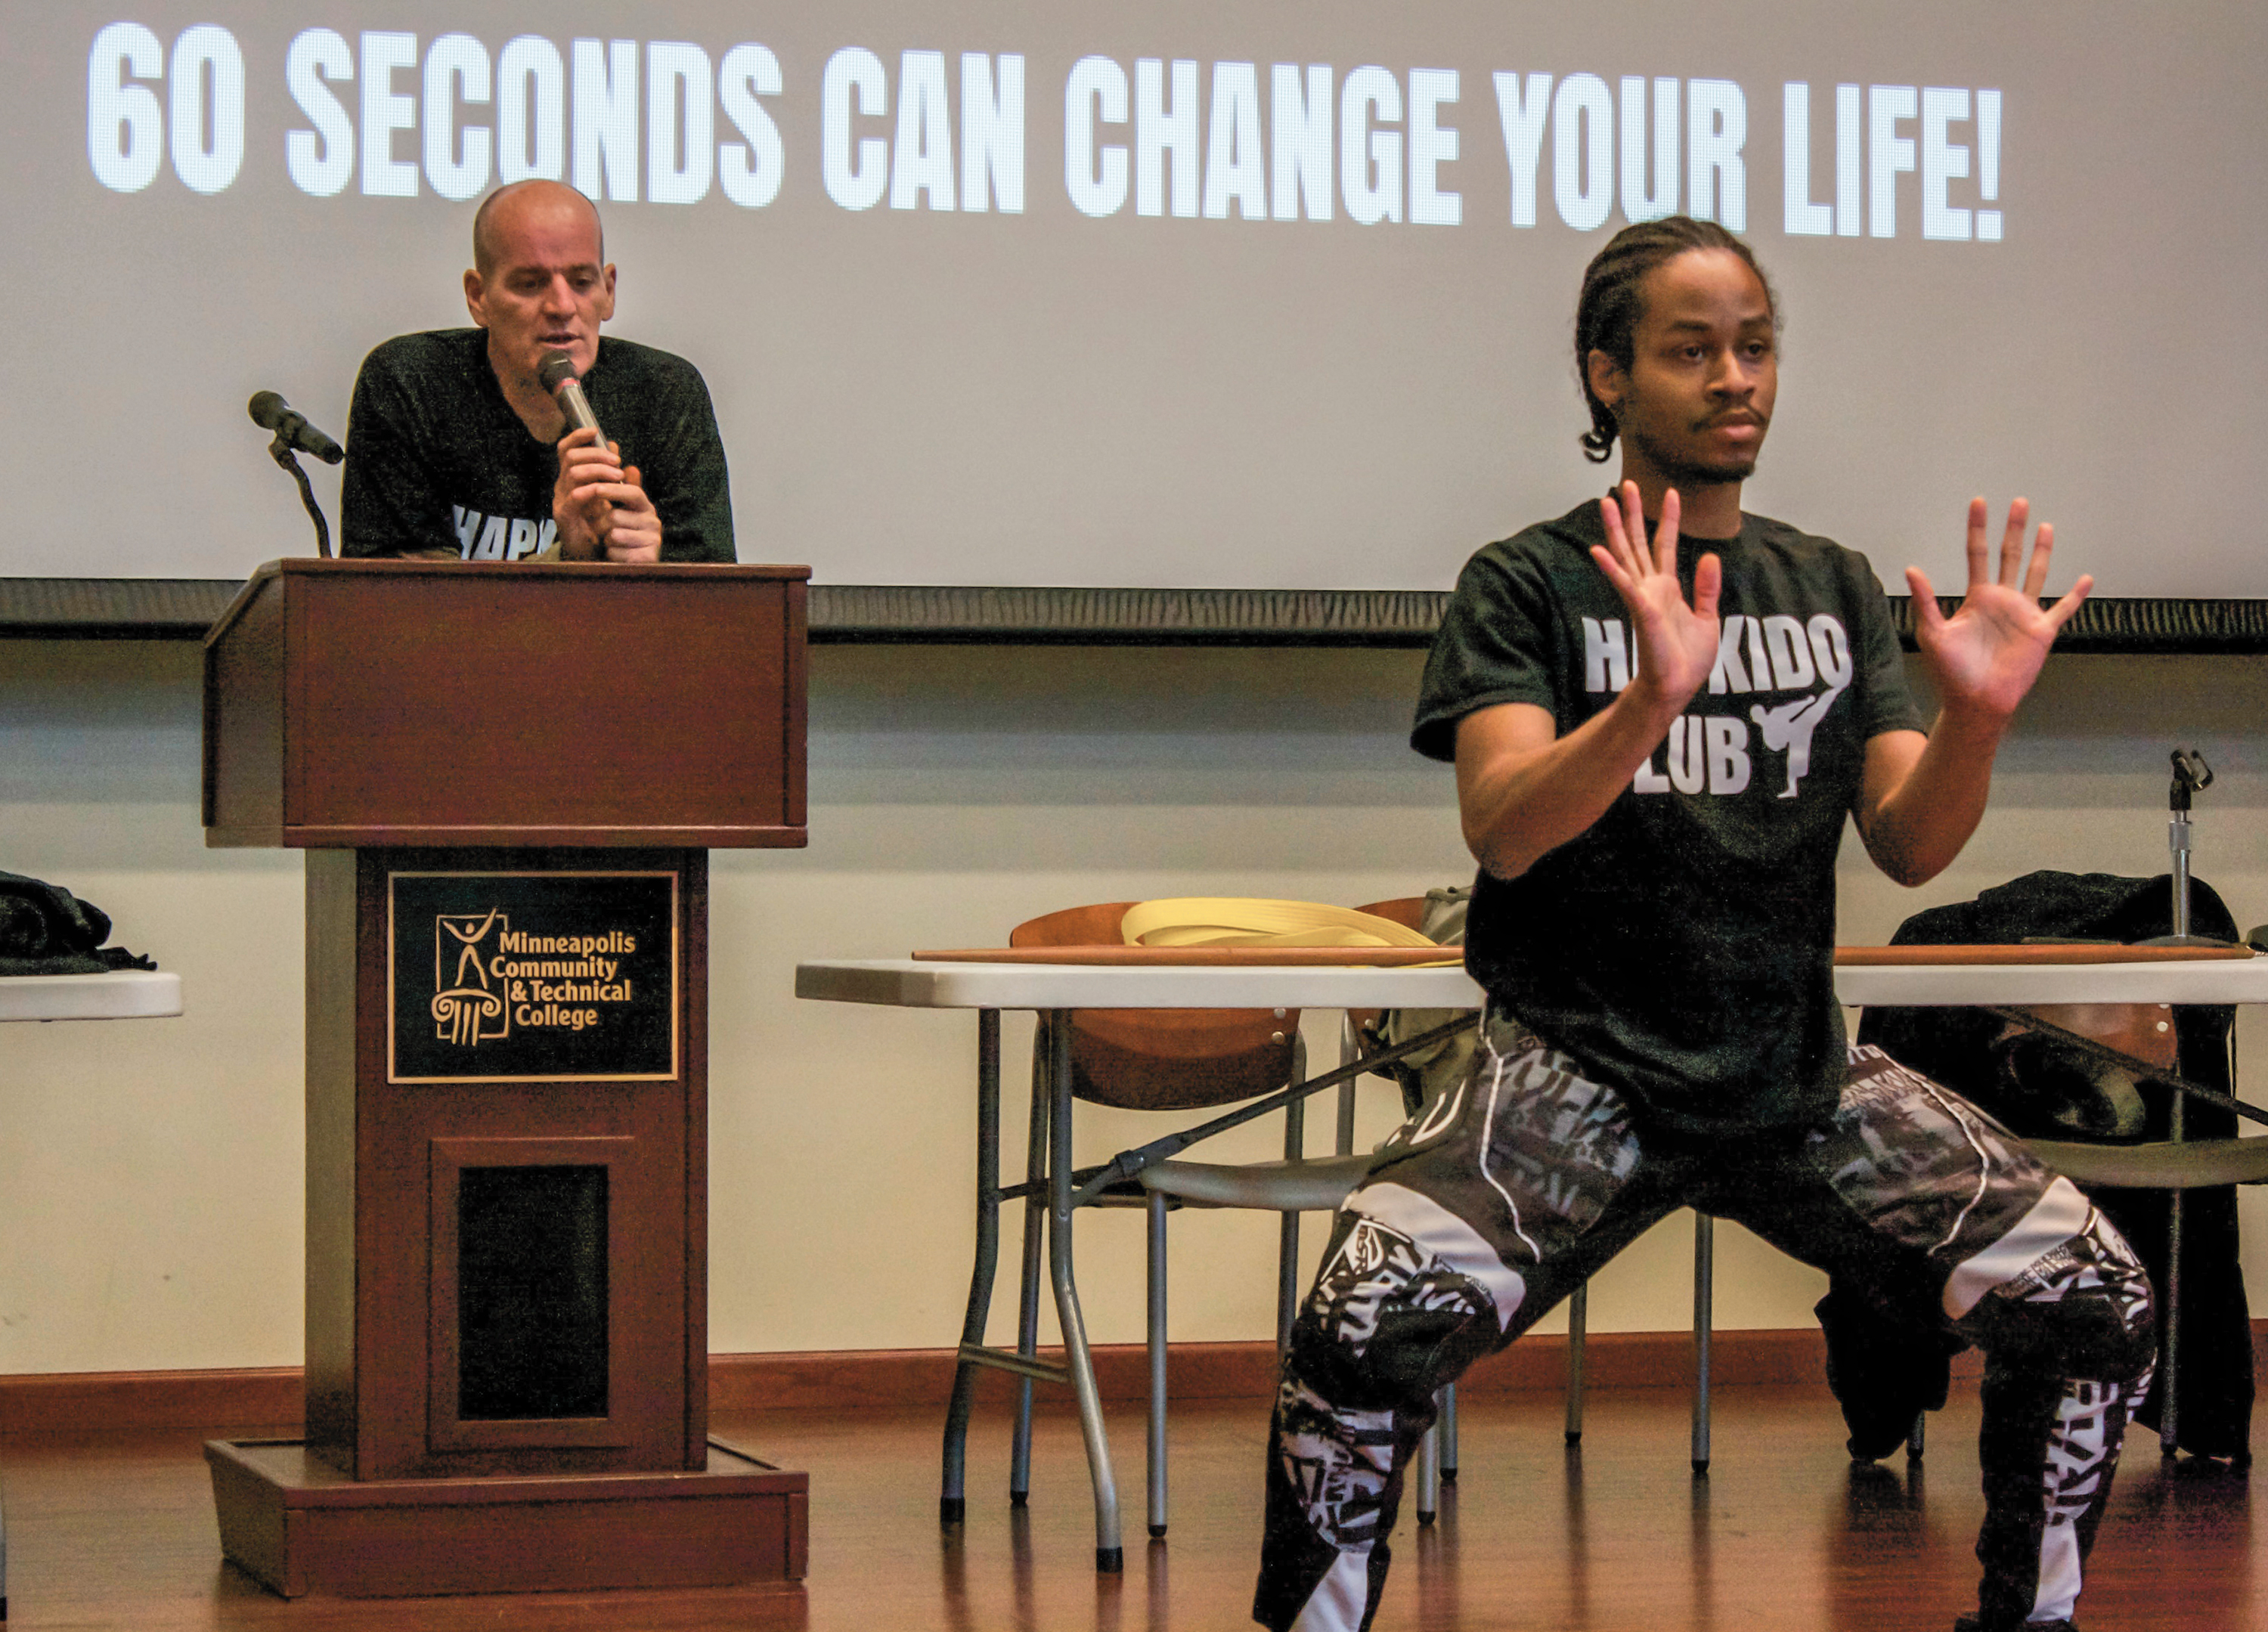 Jezel Henry shows off different Hapkido poses while John Murphy tells a story. Photo by J.D. Duggan